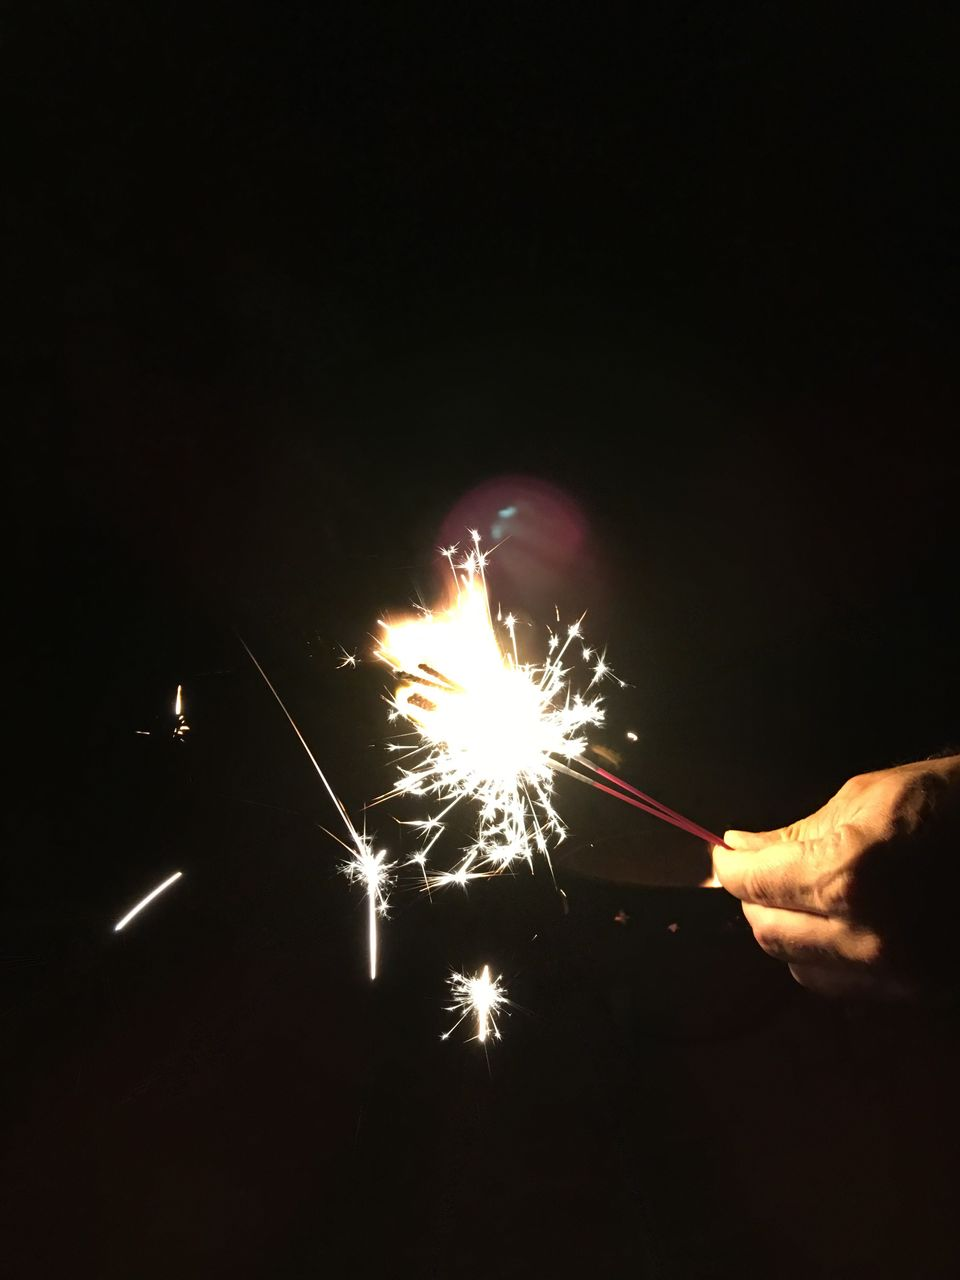 human hand, hand, firework, illuminated, celebration, motion, event, night, human body part, sparkler, burning, holding, arts culture and entertainment, long exposure, glowing, real people, blurred motion, one person, sparks, firework - man made object, firework display, finger, body part, outdoors, dark